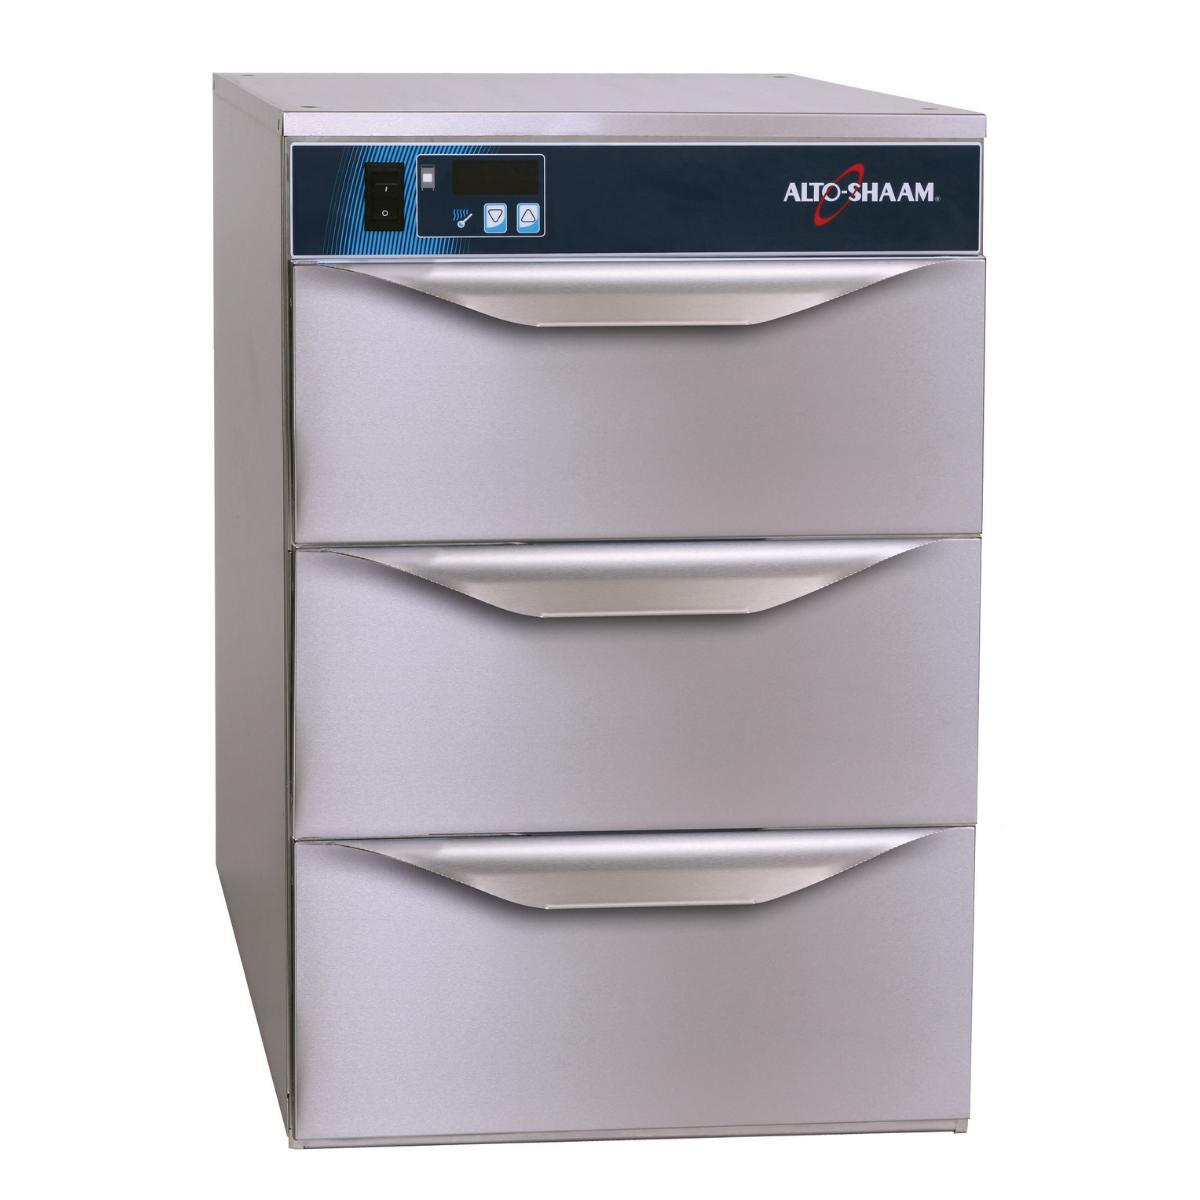 Alto-Shaam 500-3D 3 Drawer Warmer